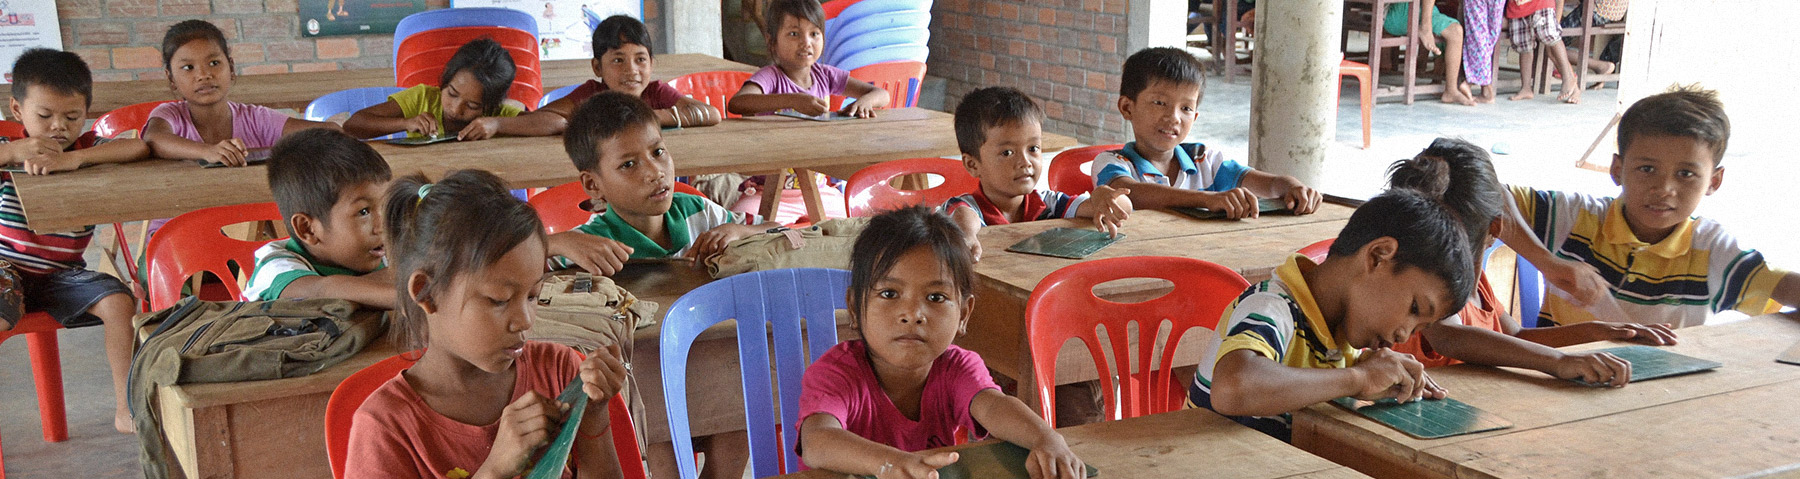 School Children Learning at opportunity Cambodia